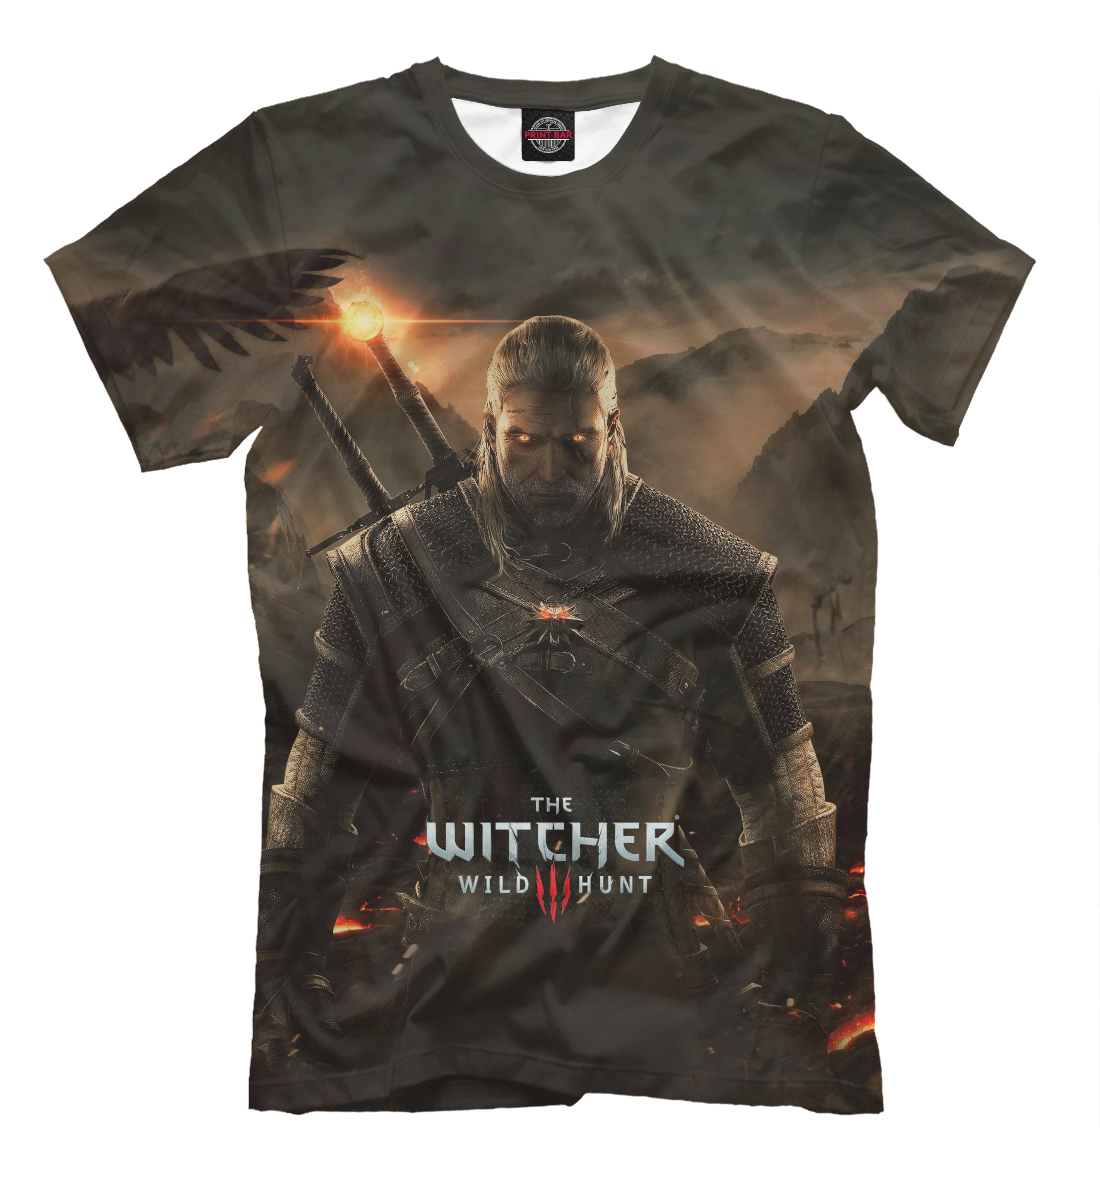 Купить The Witcher: Wild Hunt, Printbar, Футболки, WTR-872747-fut-2